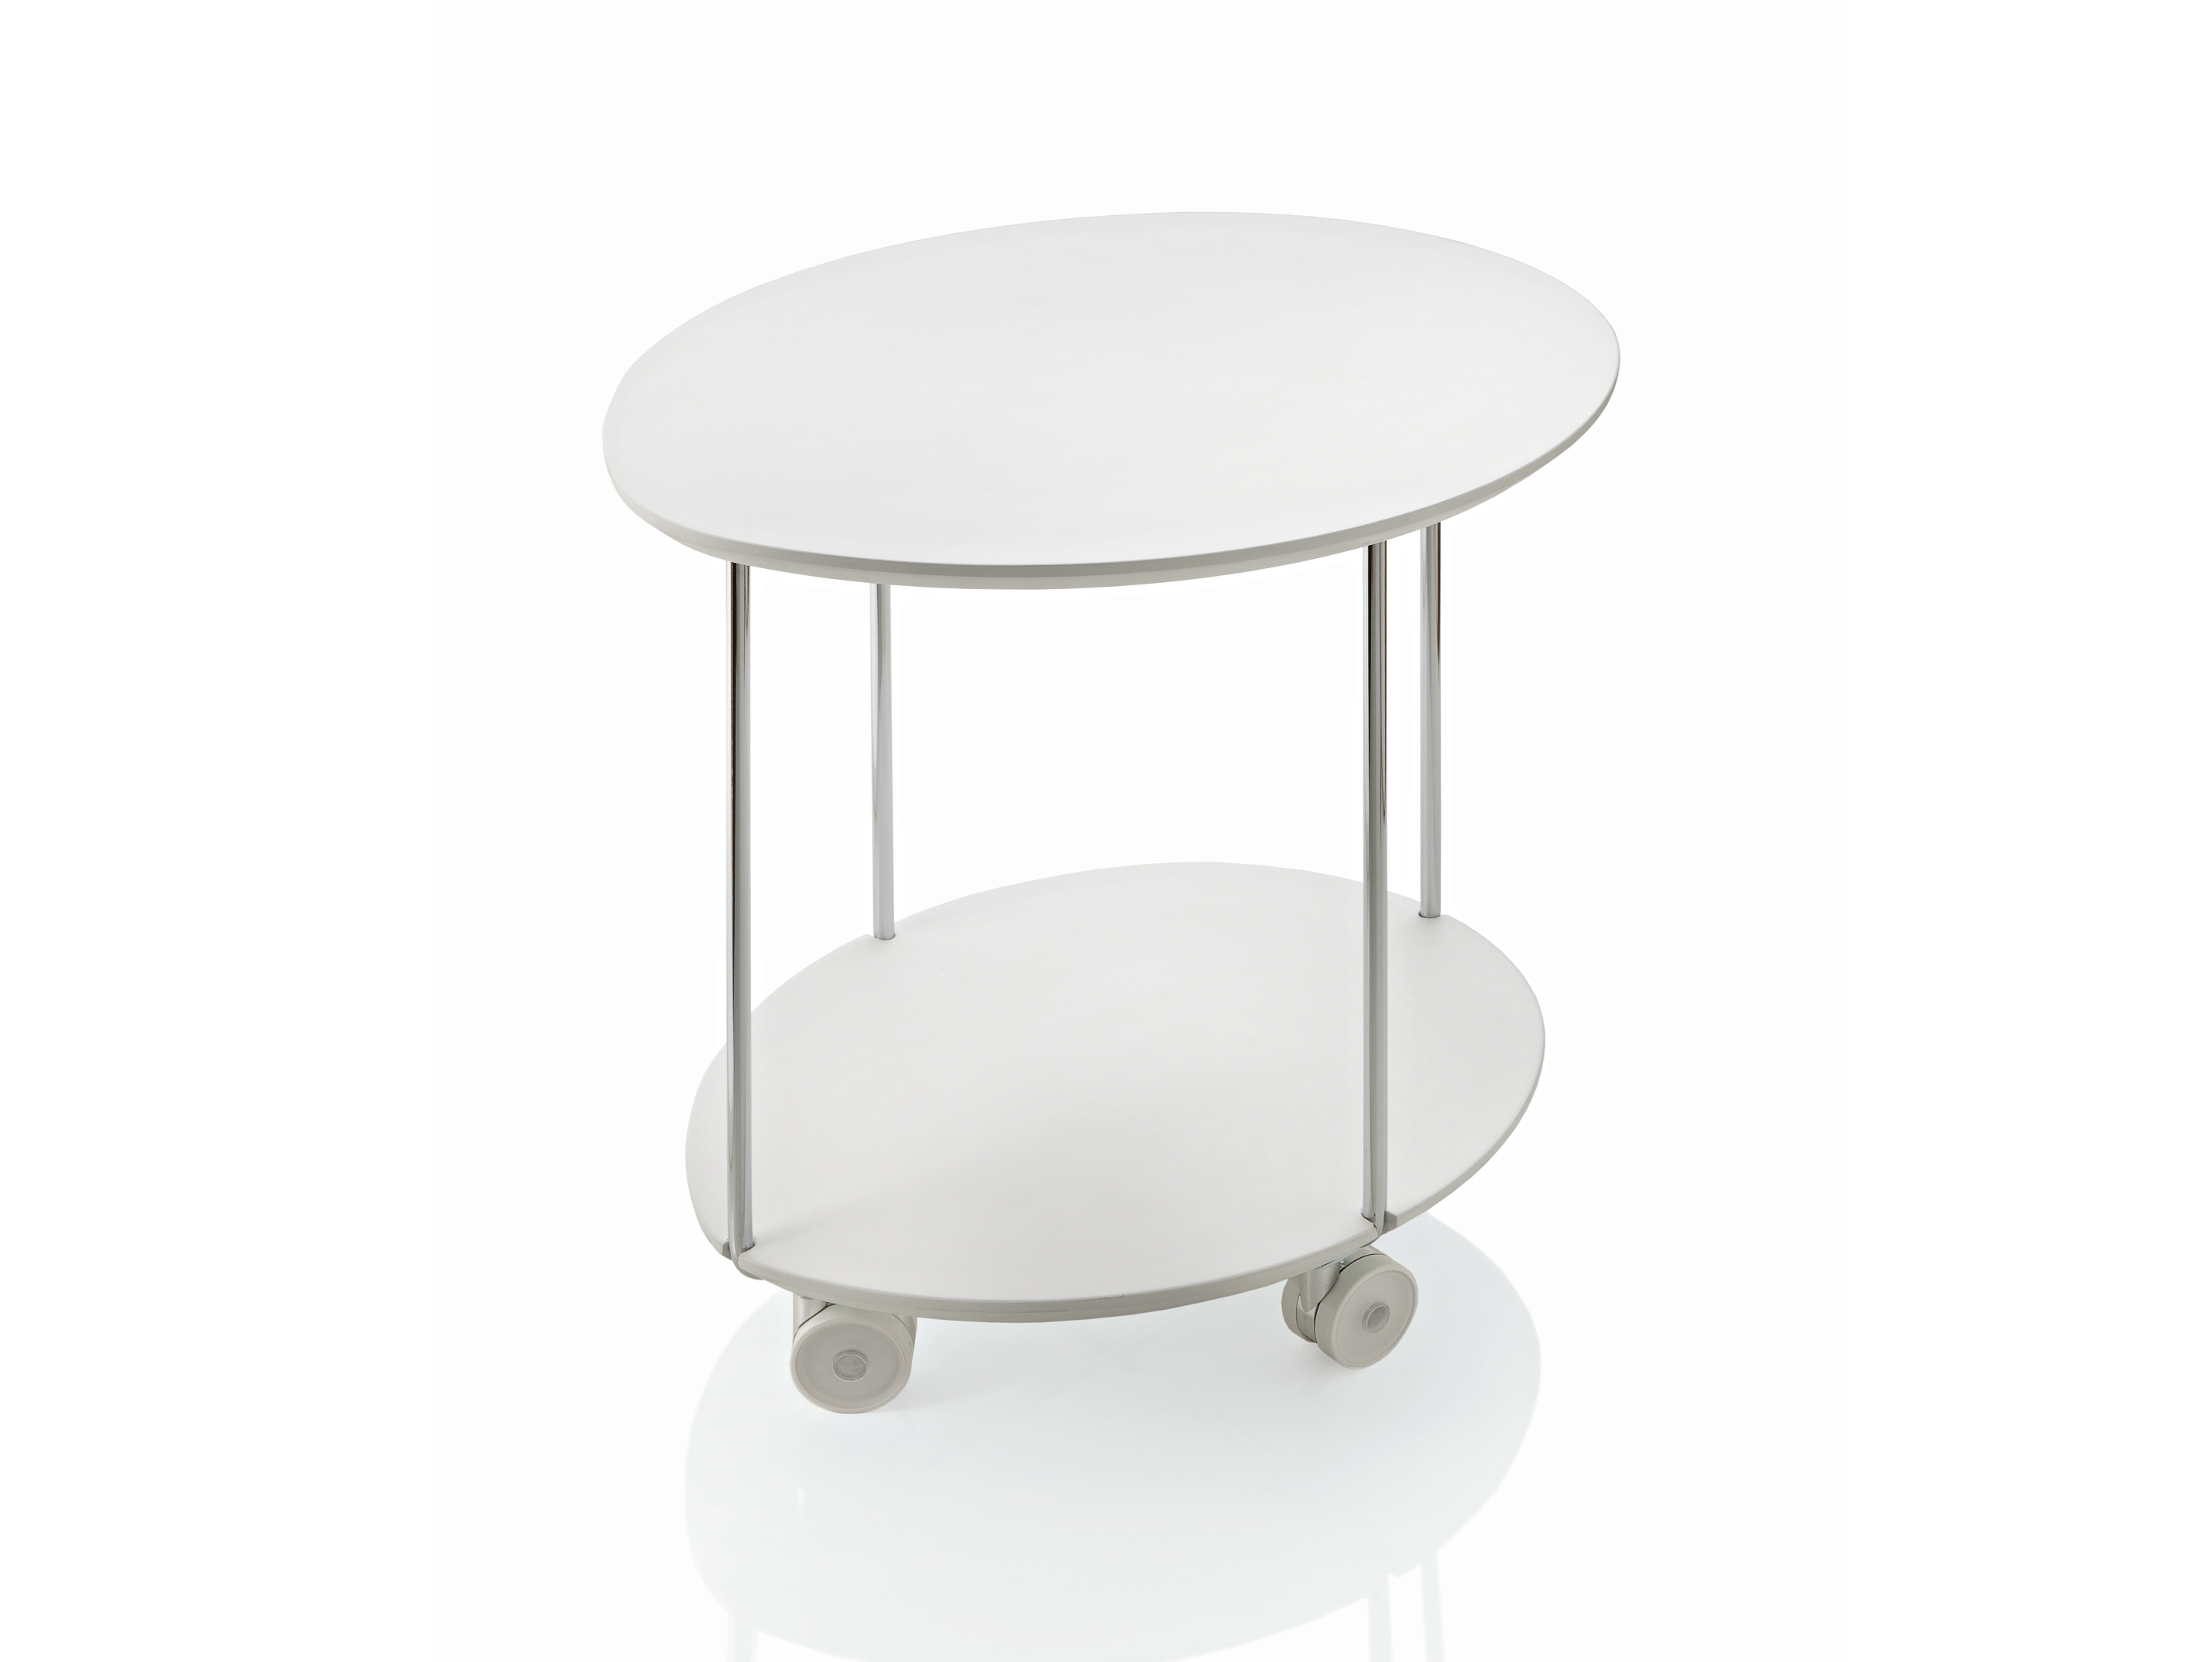 Mdf Coffee Table Trolley Clyde Bonnie Clyde Collection By Alma Design Design Nicola Cacco